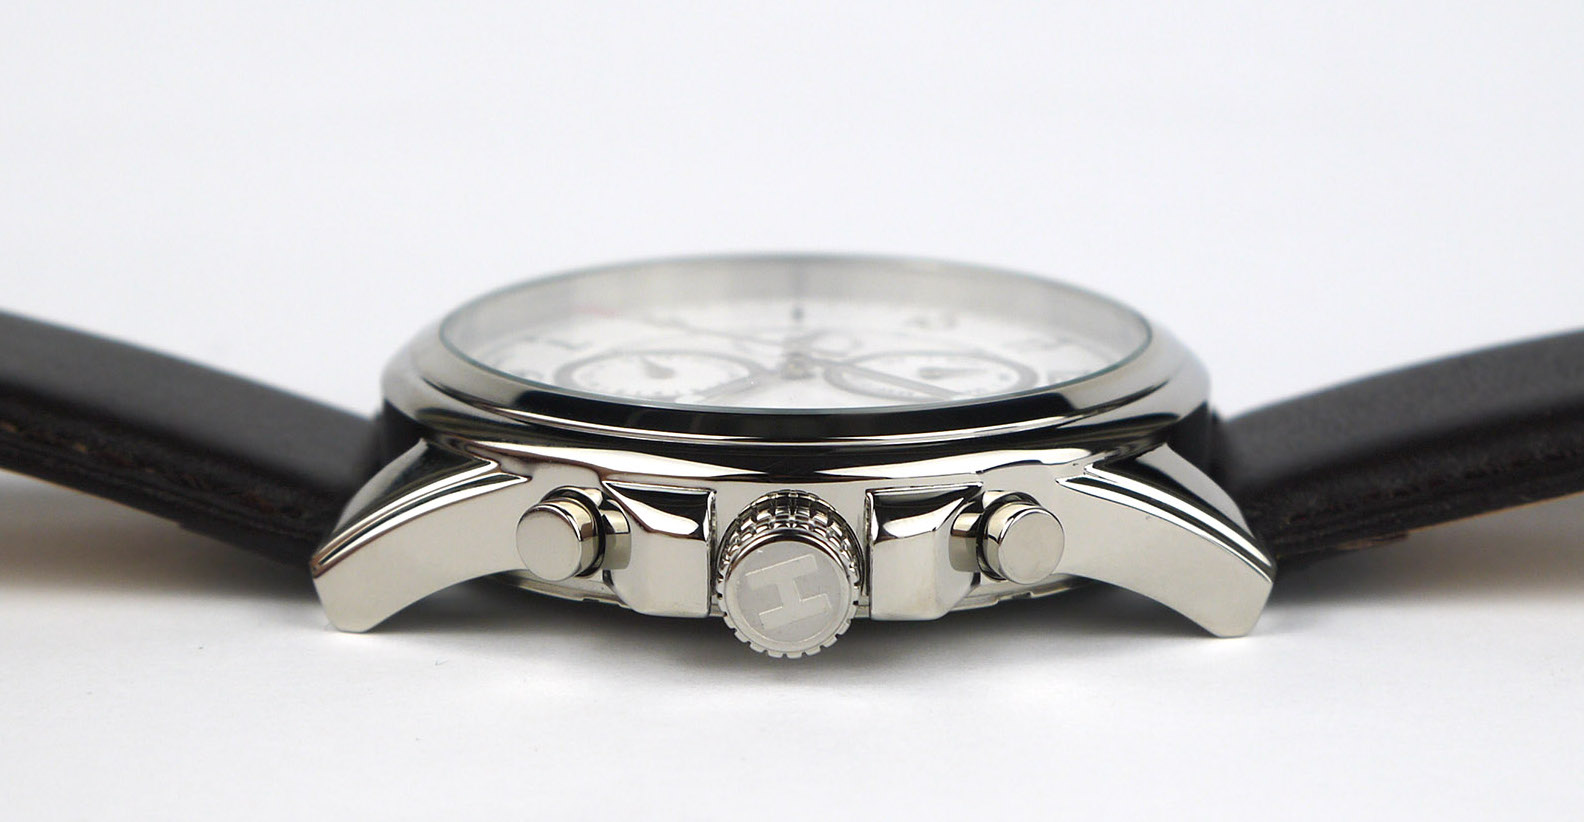 4a9b60285 Tommy Hilfiger 1710294 Stainless Steel Watch Review - WatchReviewBlog